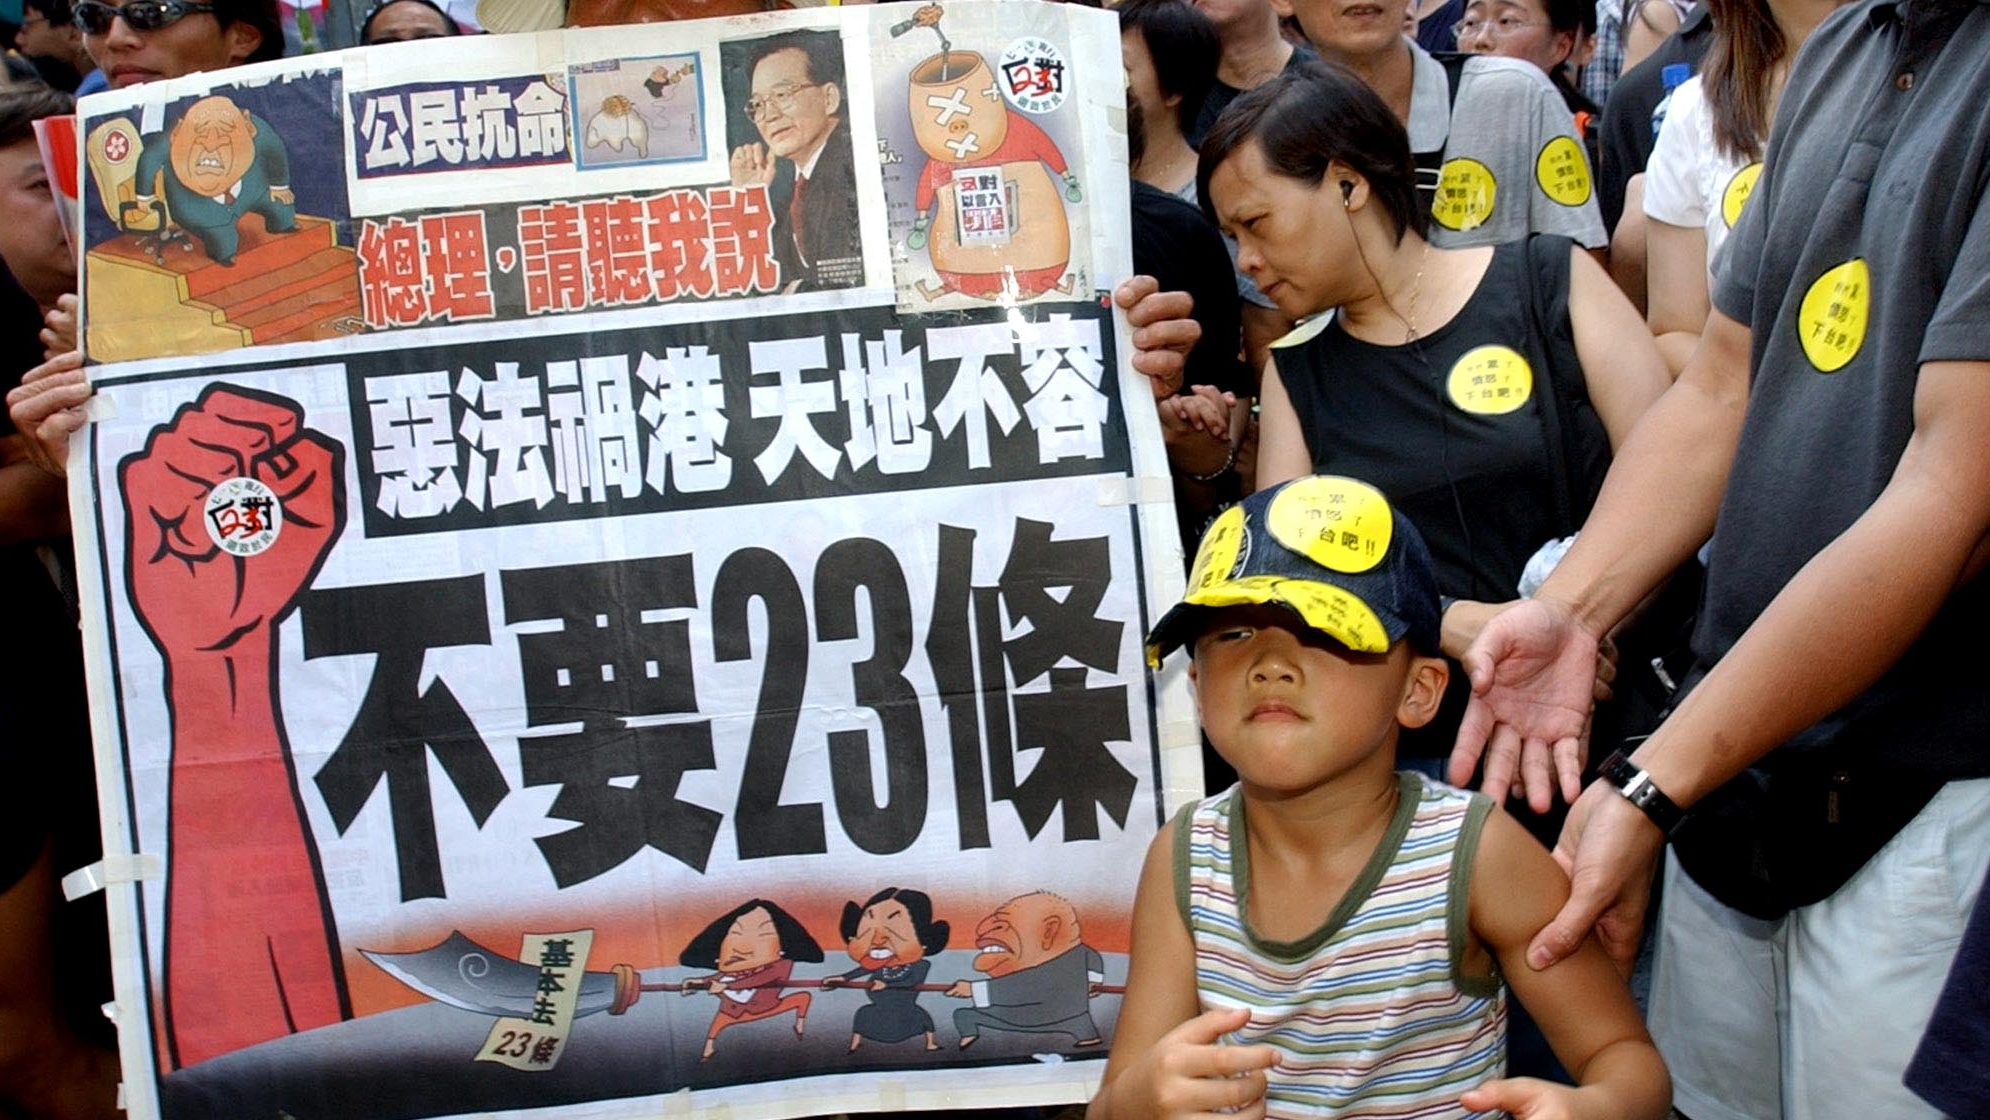 "A young protester joins protesters with a banner which reads.,""Evil law spells disaster for Hong Kong"" and ""No article 23"" as they prepare to march from a downtown park to Hong Kong's government offices Tuesday, July 1, 2003, to protest a planned anti-subversion law known also as Article 23, that has stirred one of the biggest controversies since Britain returned Hong Kong to China six years ago. Tens of thousands of people turned out to protest on the anniversary of Hong Kong's handover. (AP Photo/Anat Givon)"